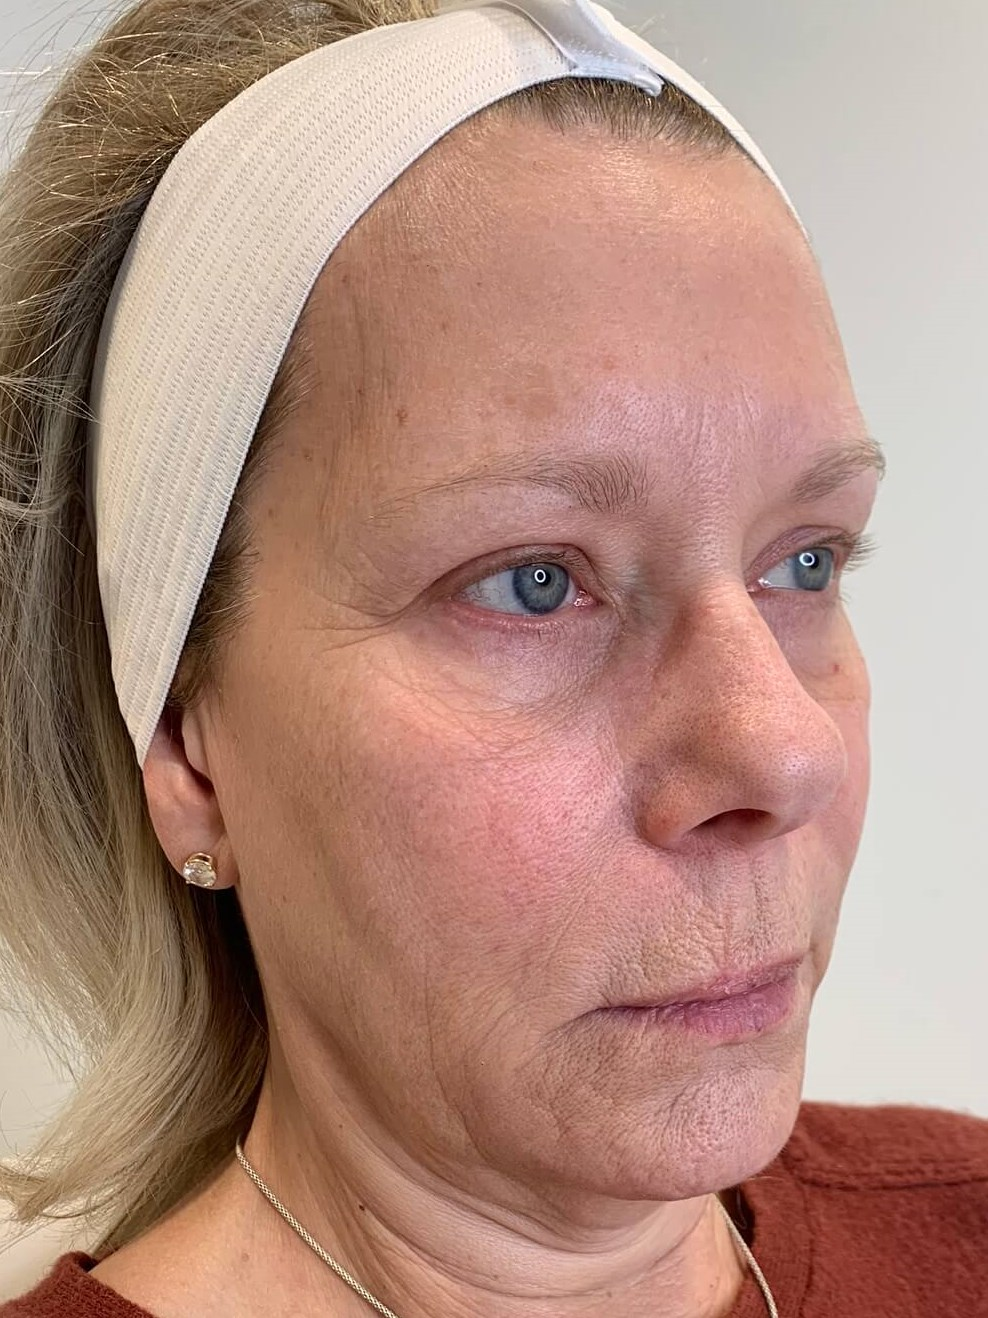 VOLUME AND CHEEK CONTOUR CREATED USING RESTYLANE LYFT FOR DALLAS WOMAN